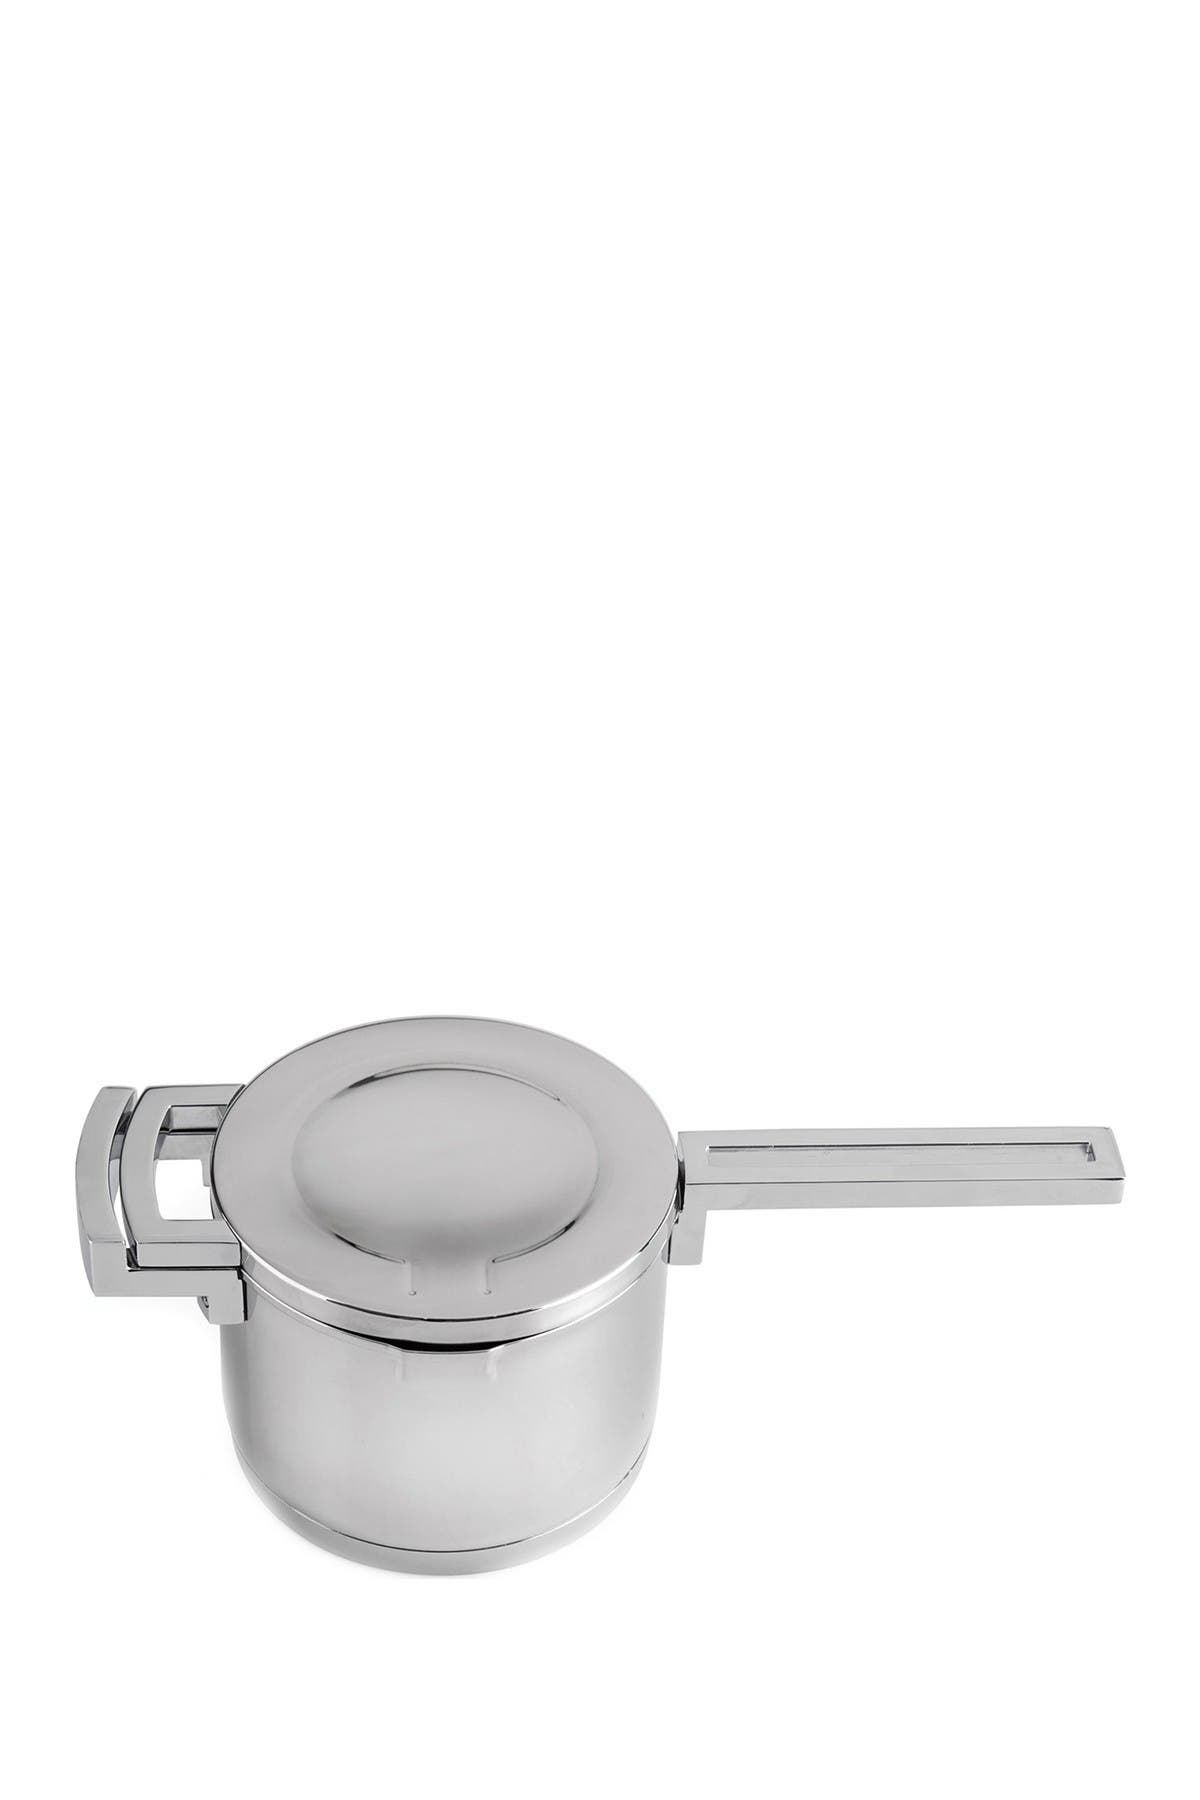 Image of BergHOFF 2.1 qt. Stainless Steel Covered Sauce Pan